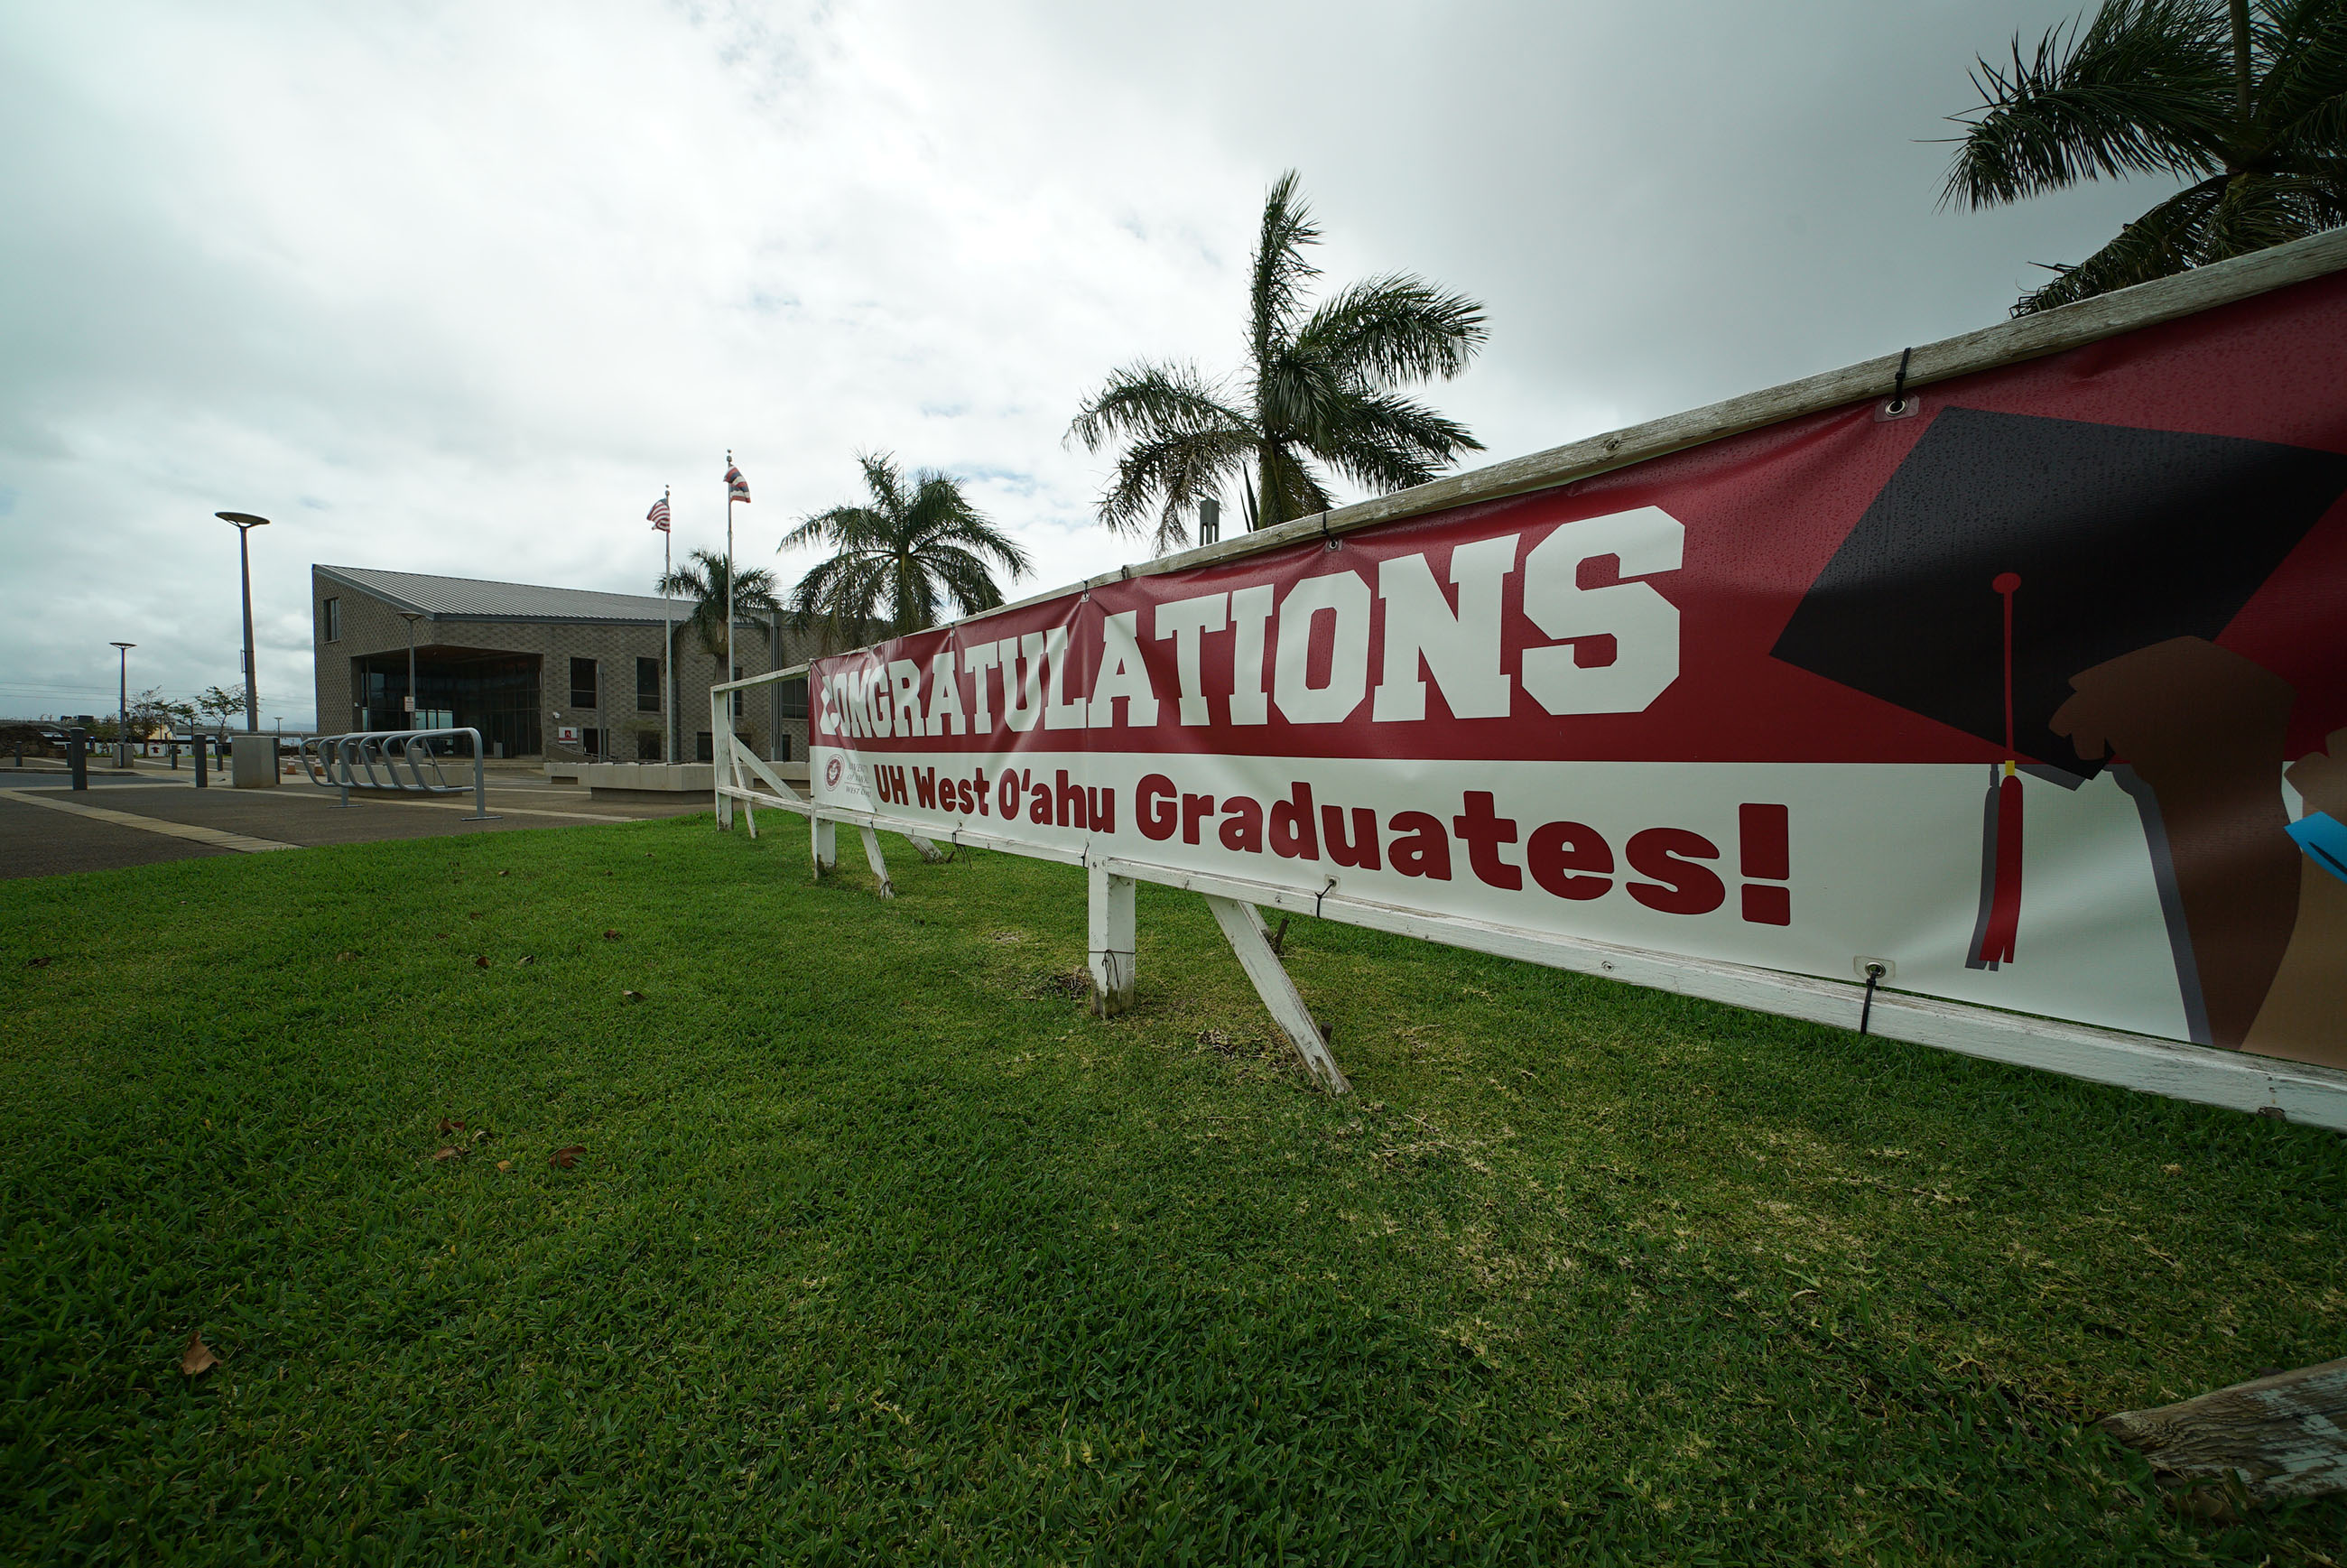 University of Hawaii West Oahu campus graduation sign.